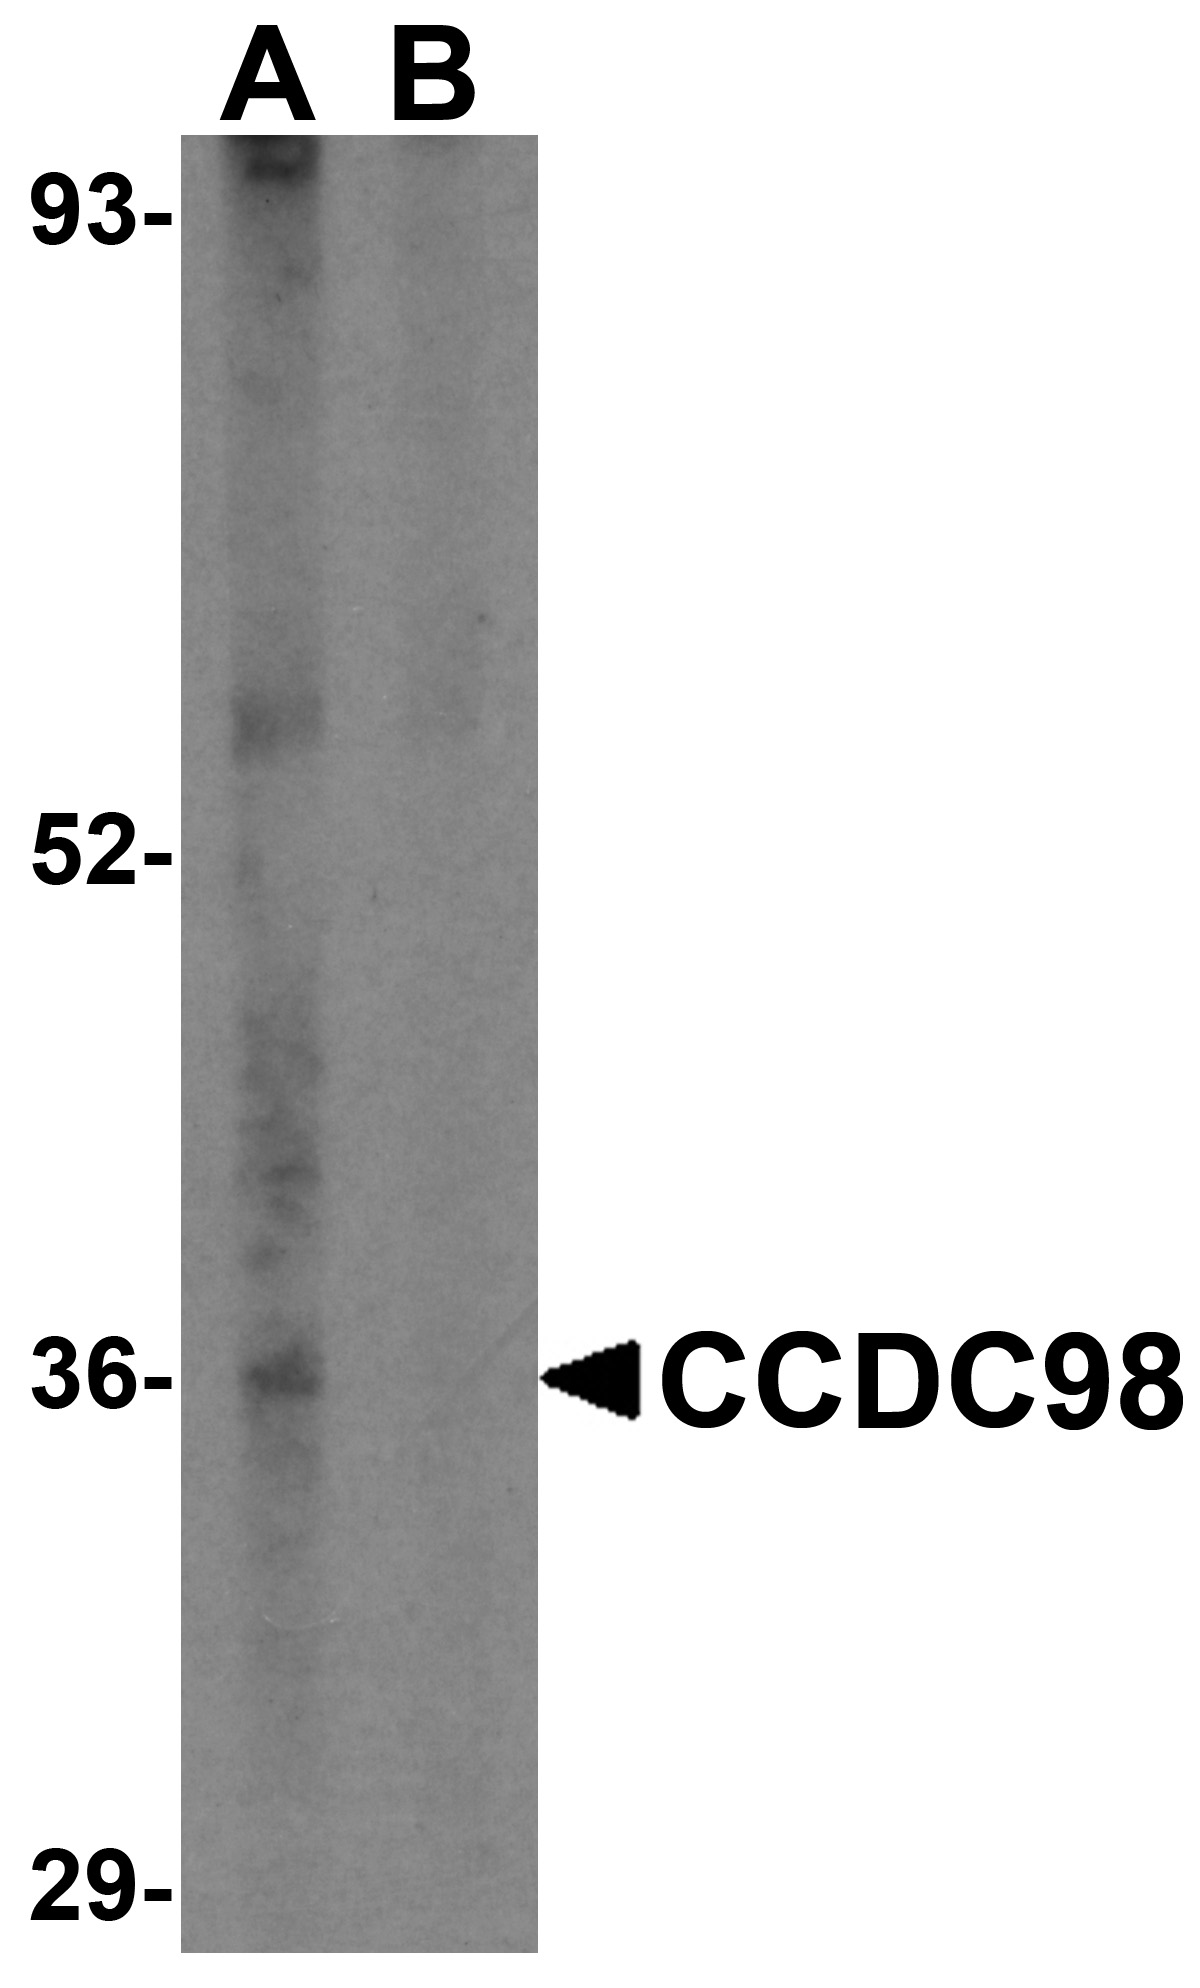 CCDC98 Antibody (OAPB00568) in the absence and presence of blocking peptide cells using Western Blot